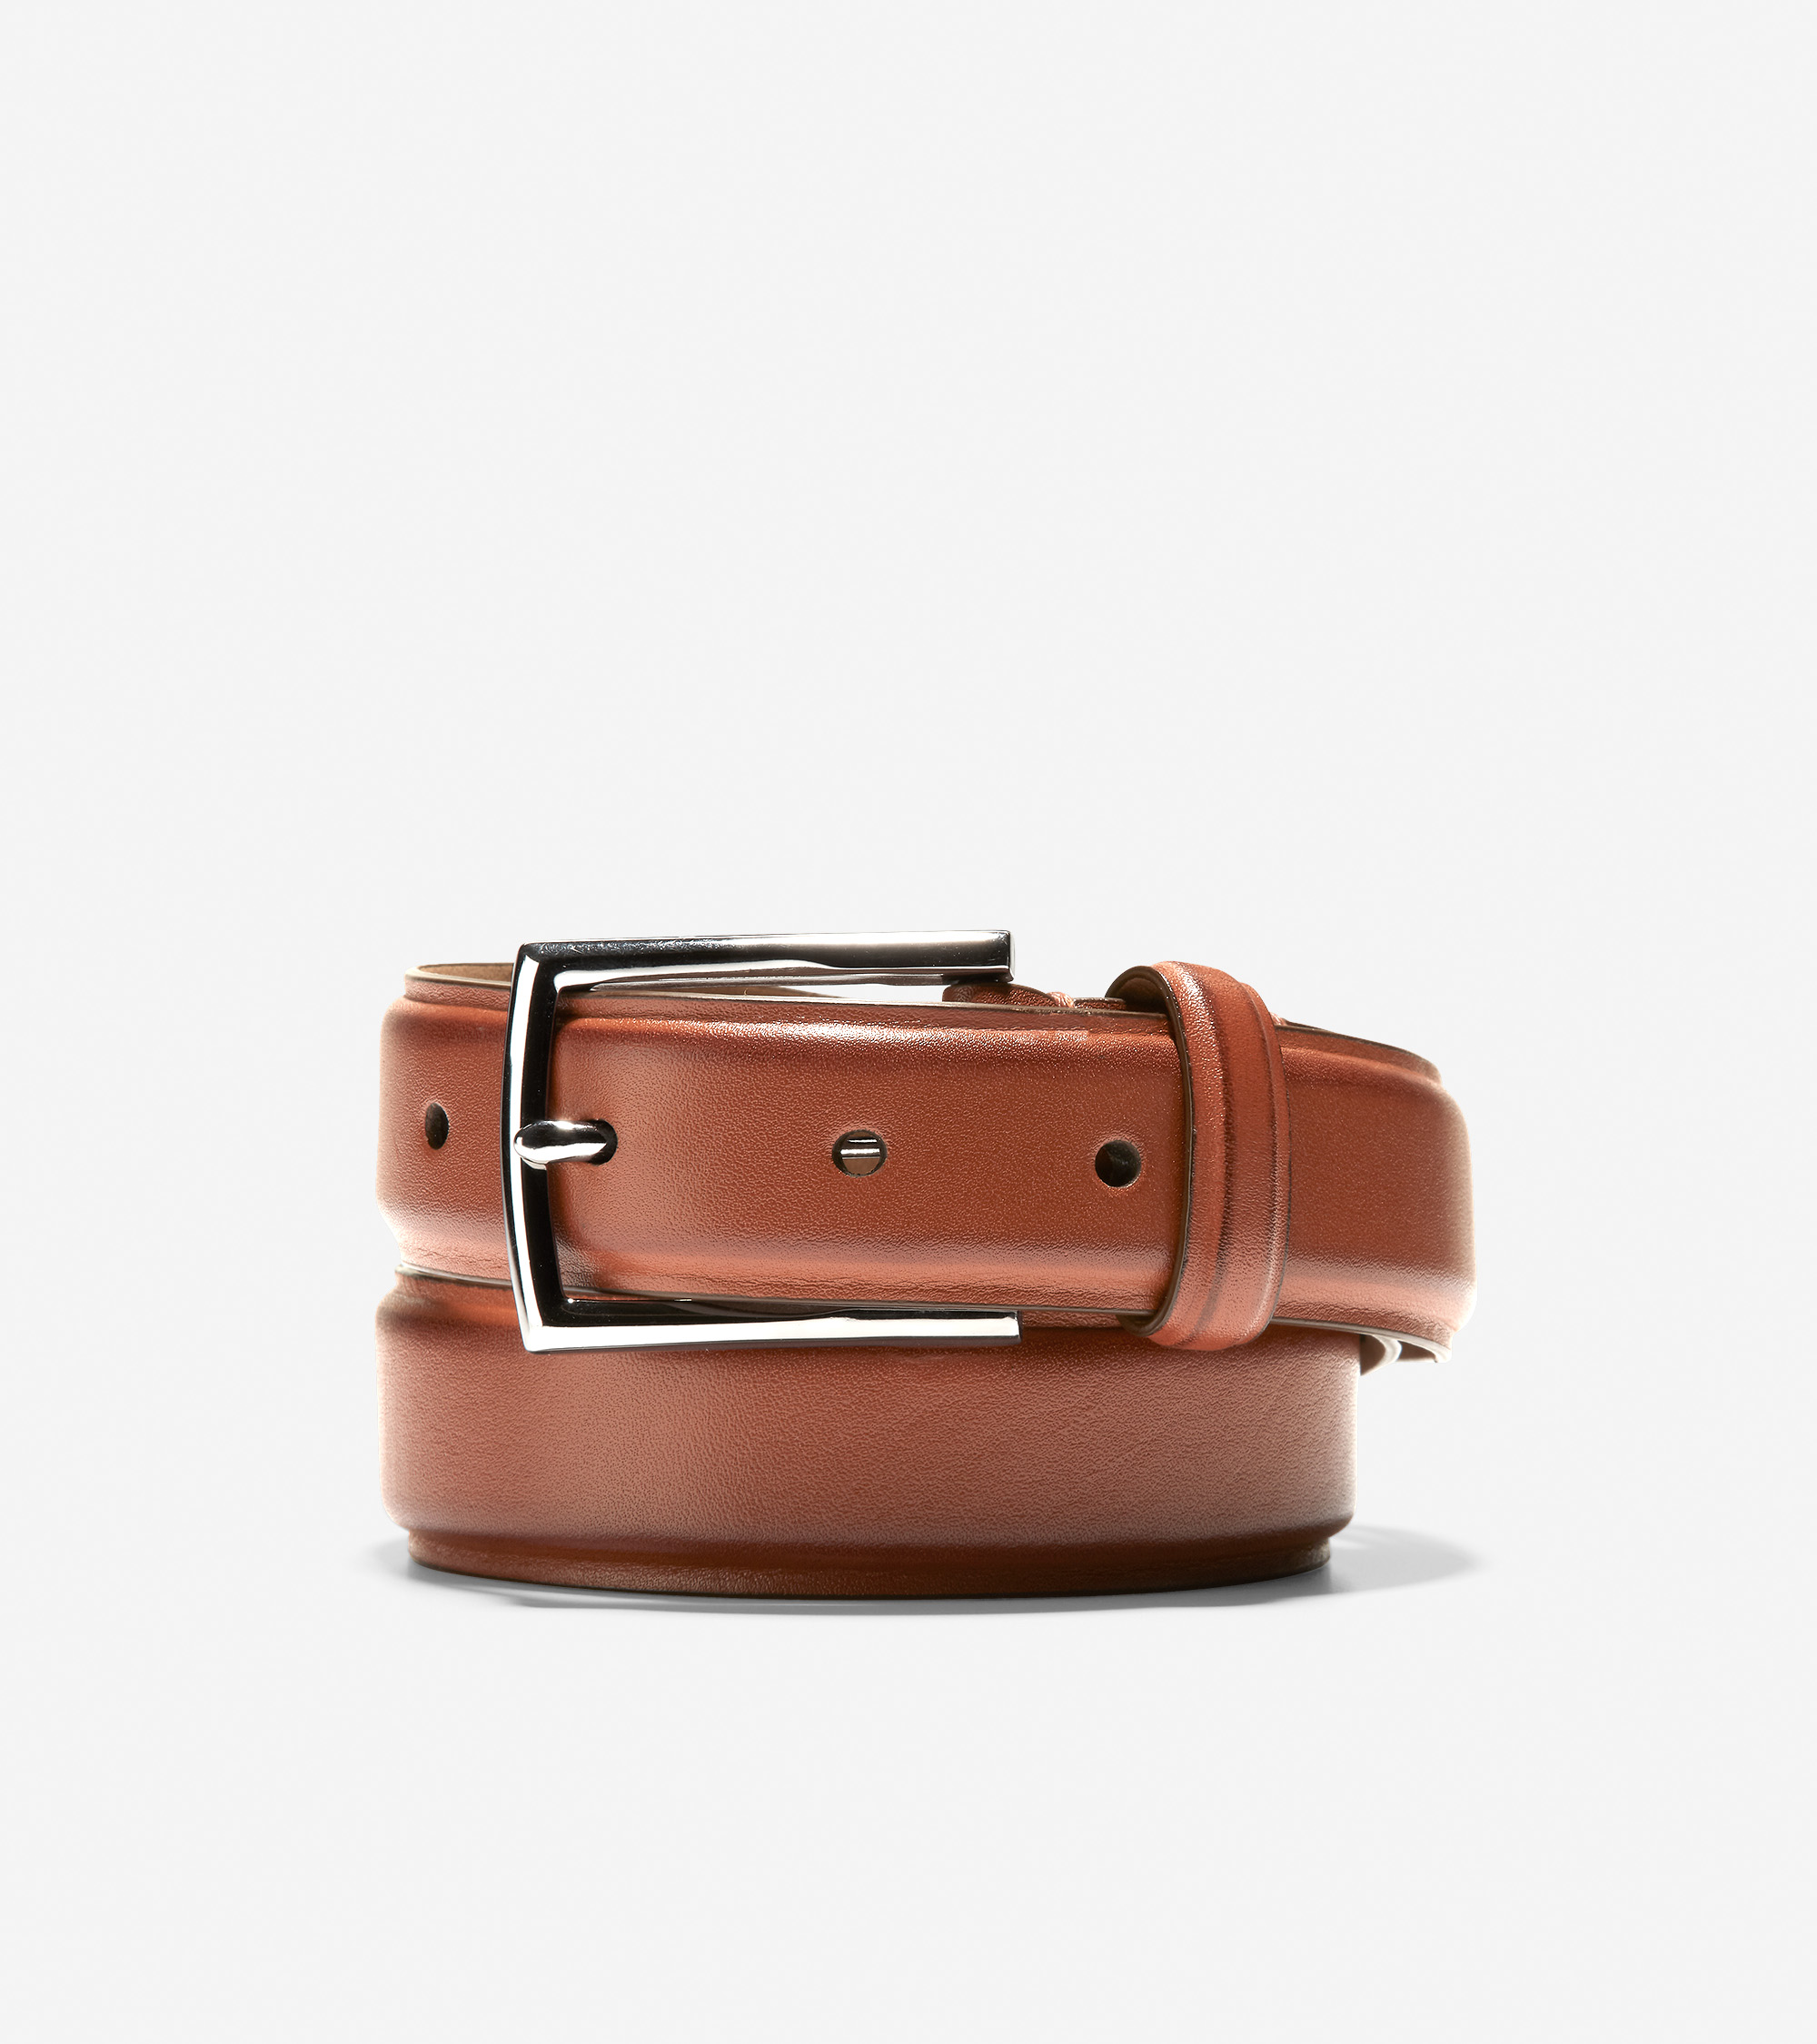 558291dcca Men's Feathercraft 30mm Belt in British Tan Leather | Cole Haan US